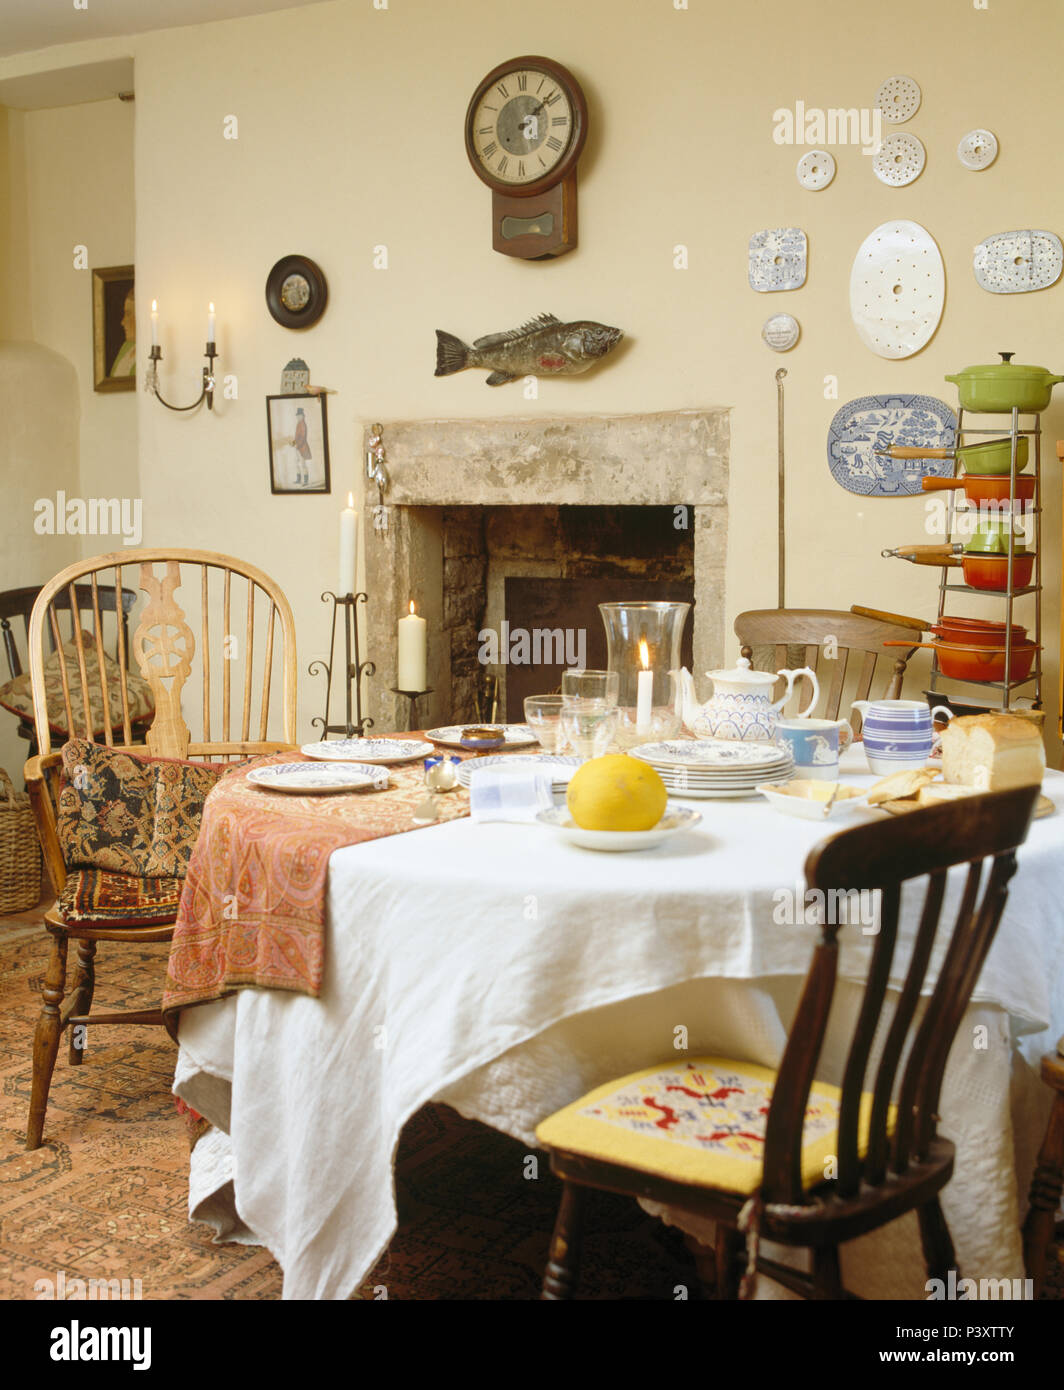 Genial Antique Windsor Carver Chair With Old Wooden Chairs At Table With White  Linen Cloth Set For Breakfast In Country Dining Room